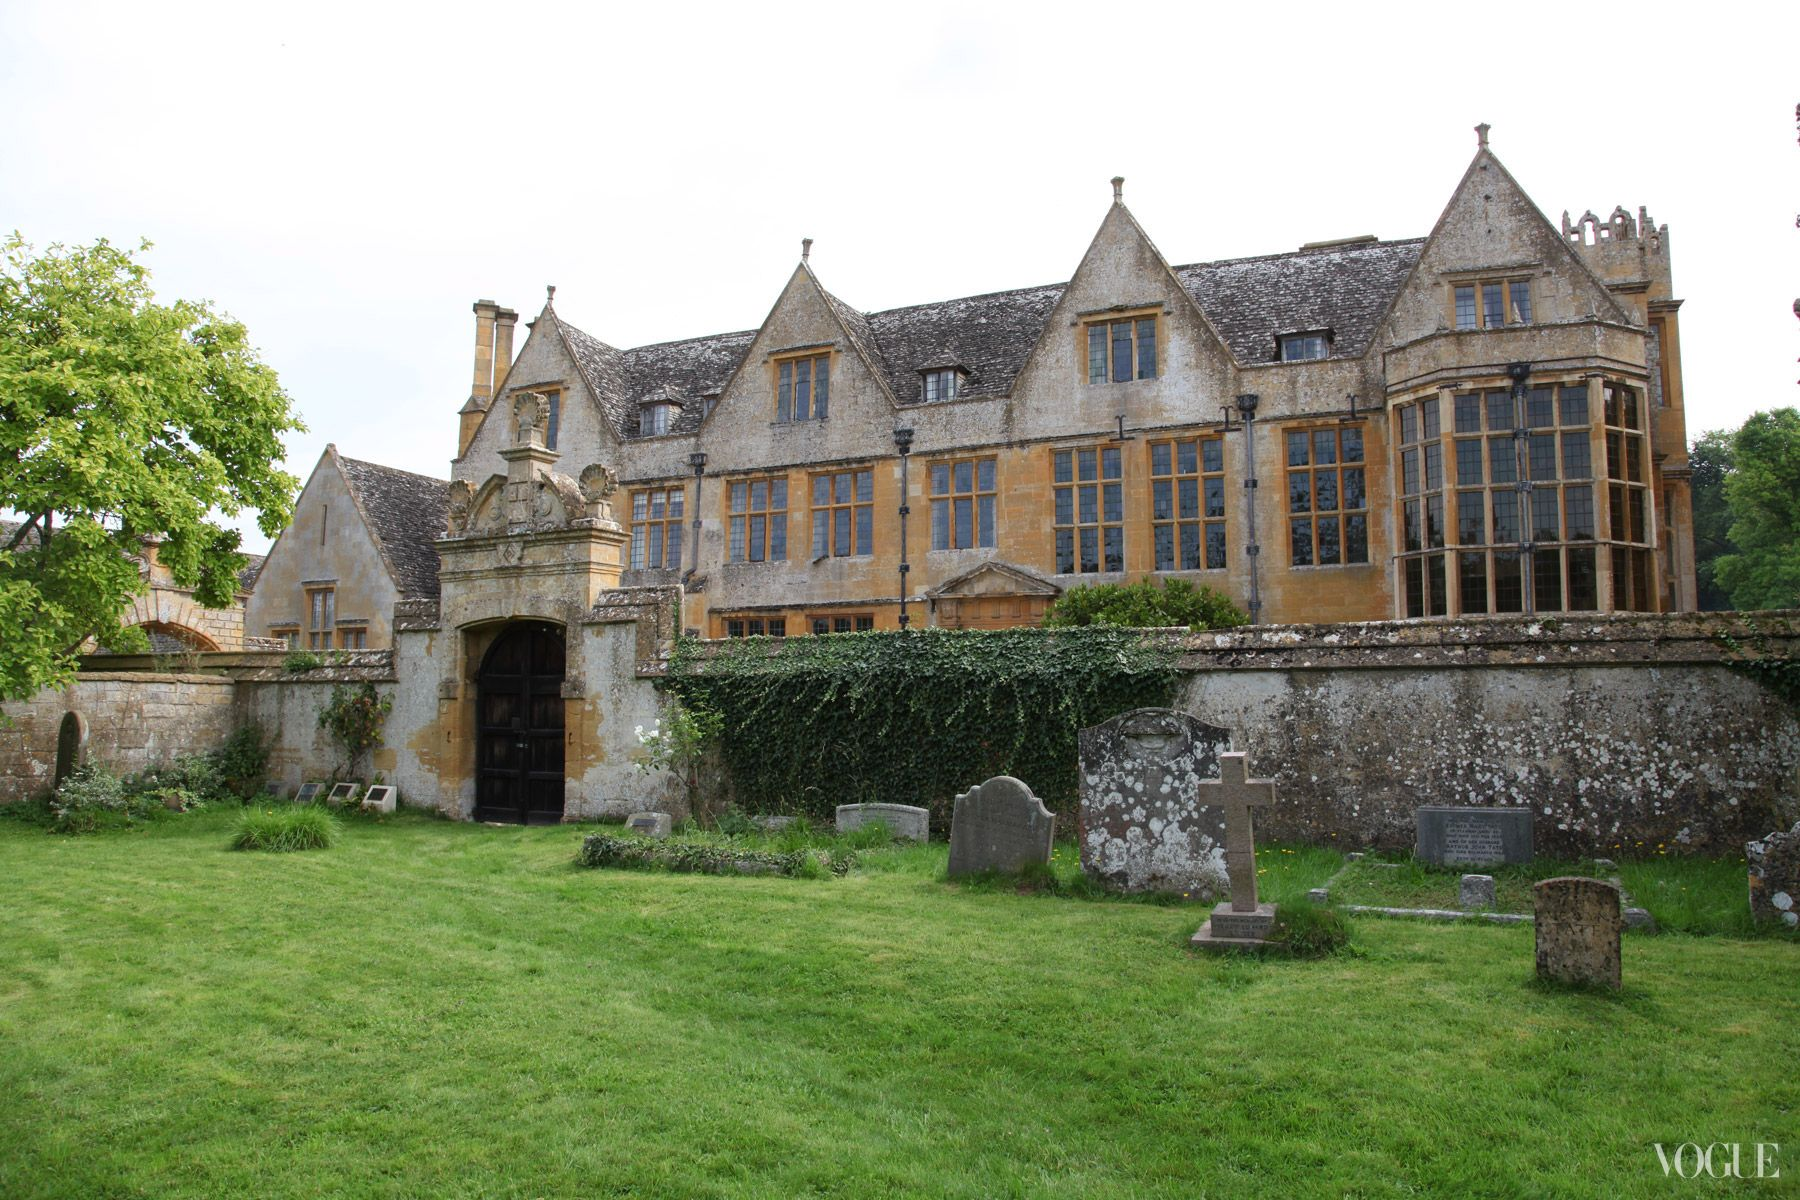 More stanway house this may be my favorite of the english manors